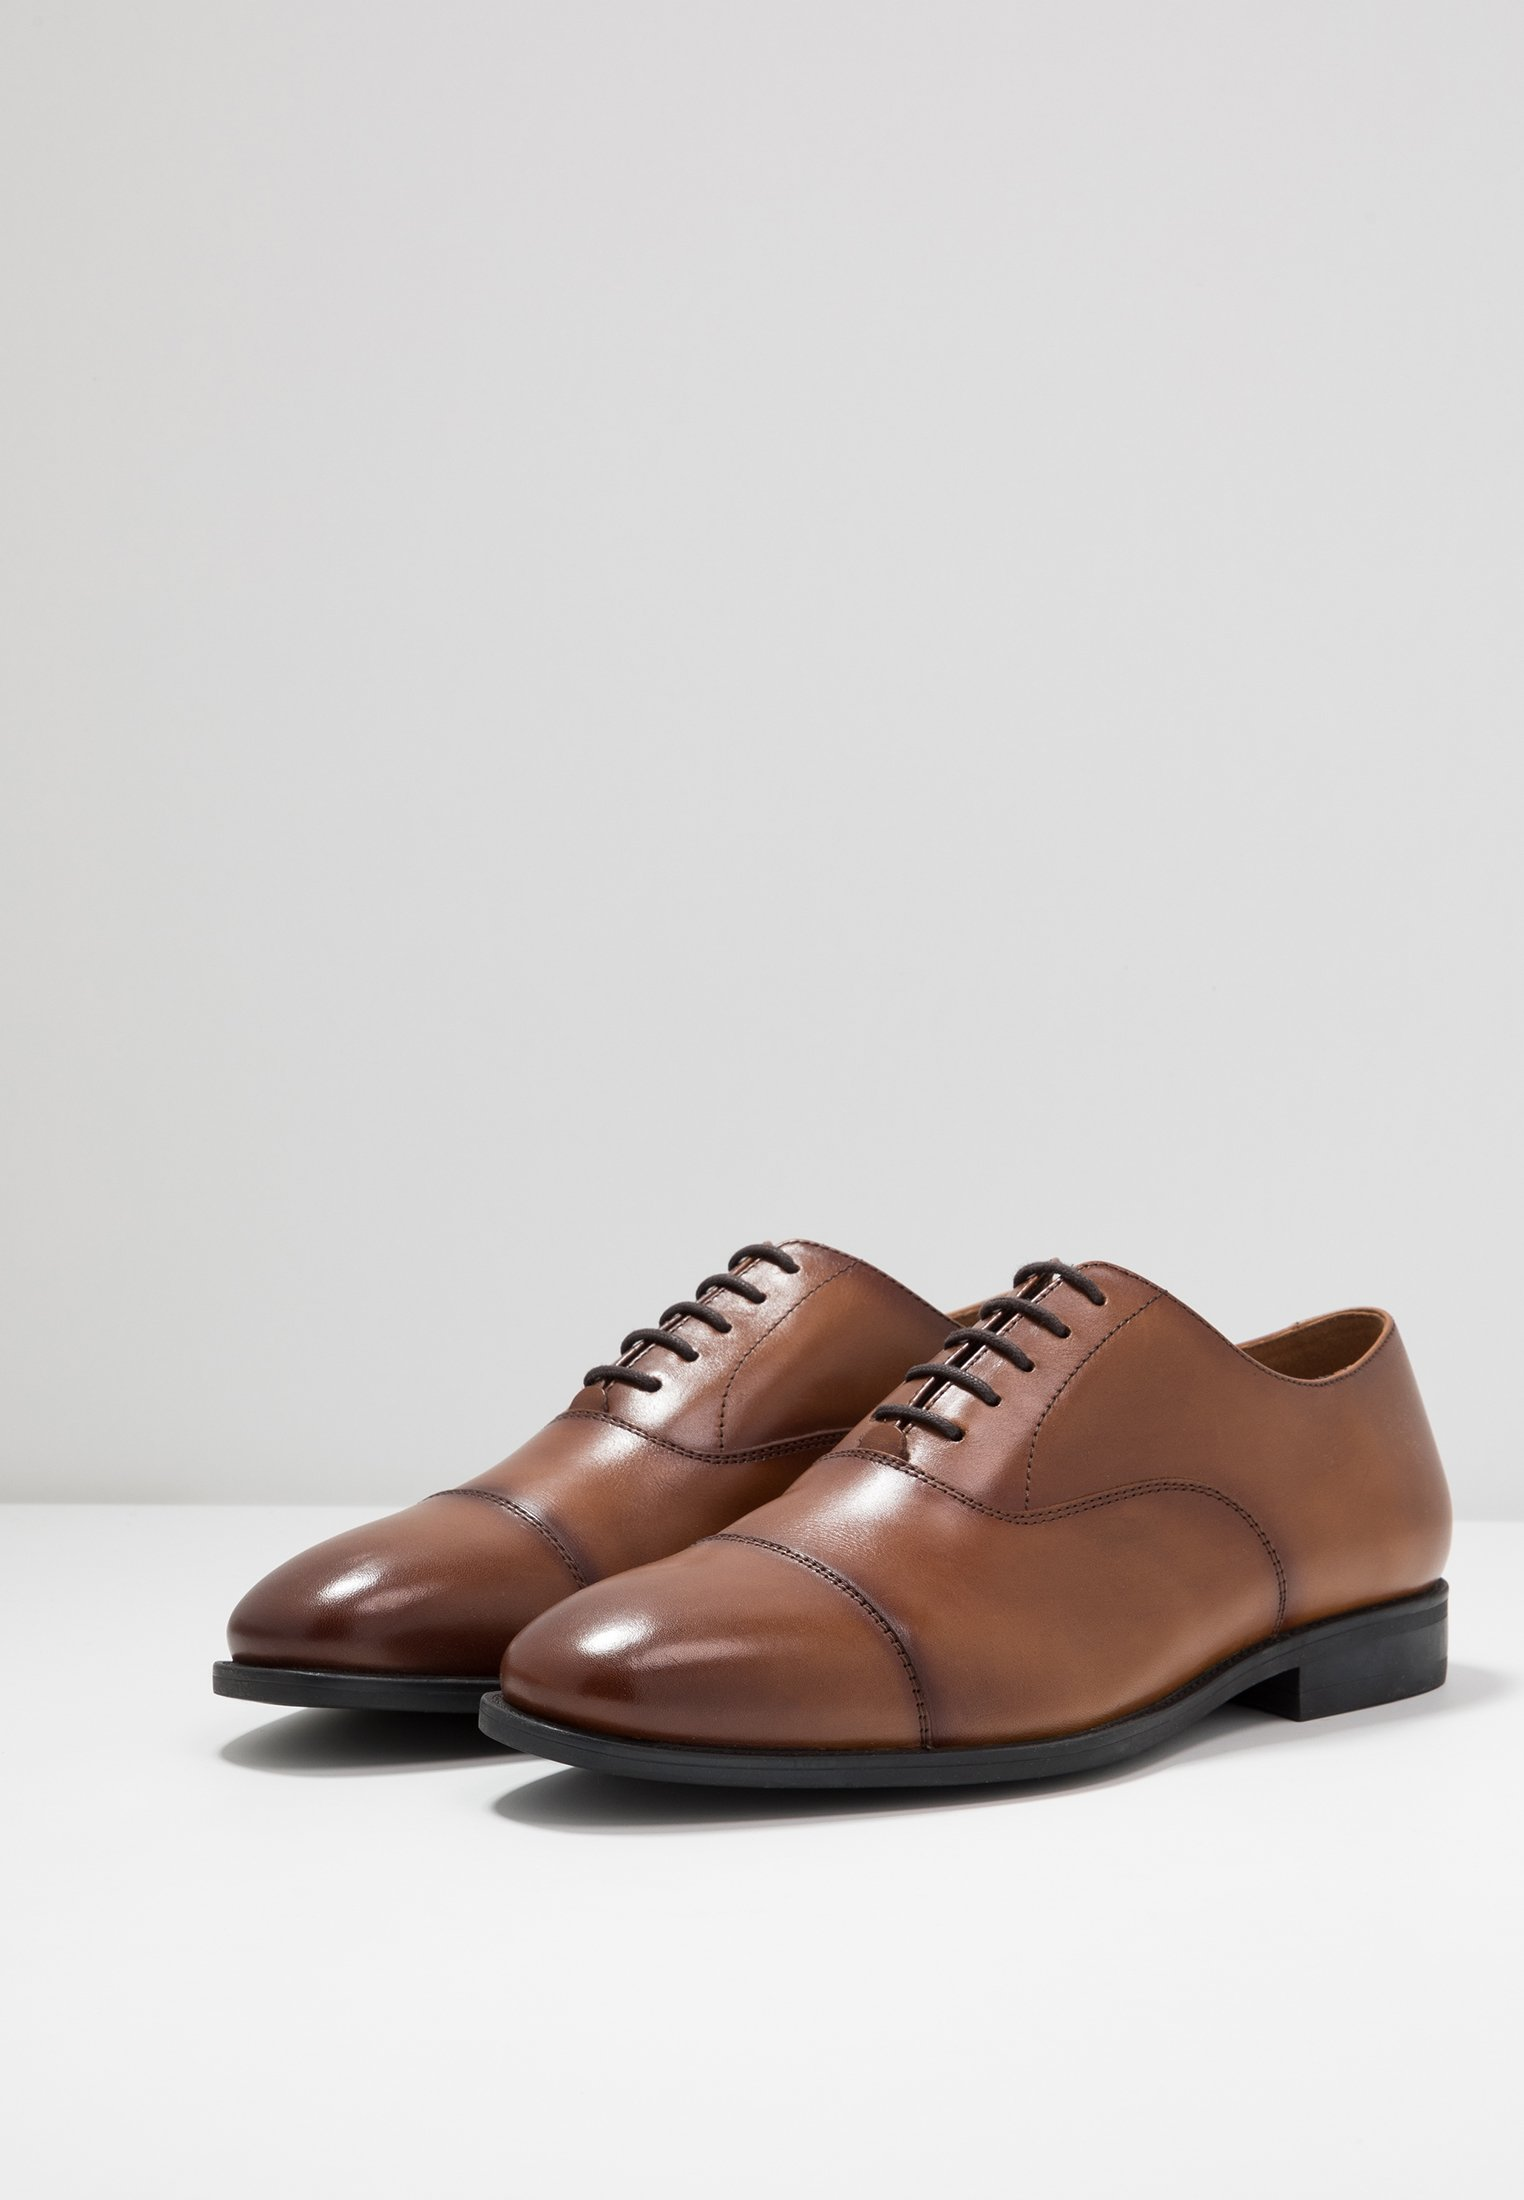 Richelieus Memo Office CapDerbiesamp; Toe Oxford Tan fYbg67y